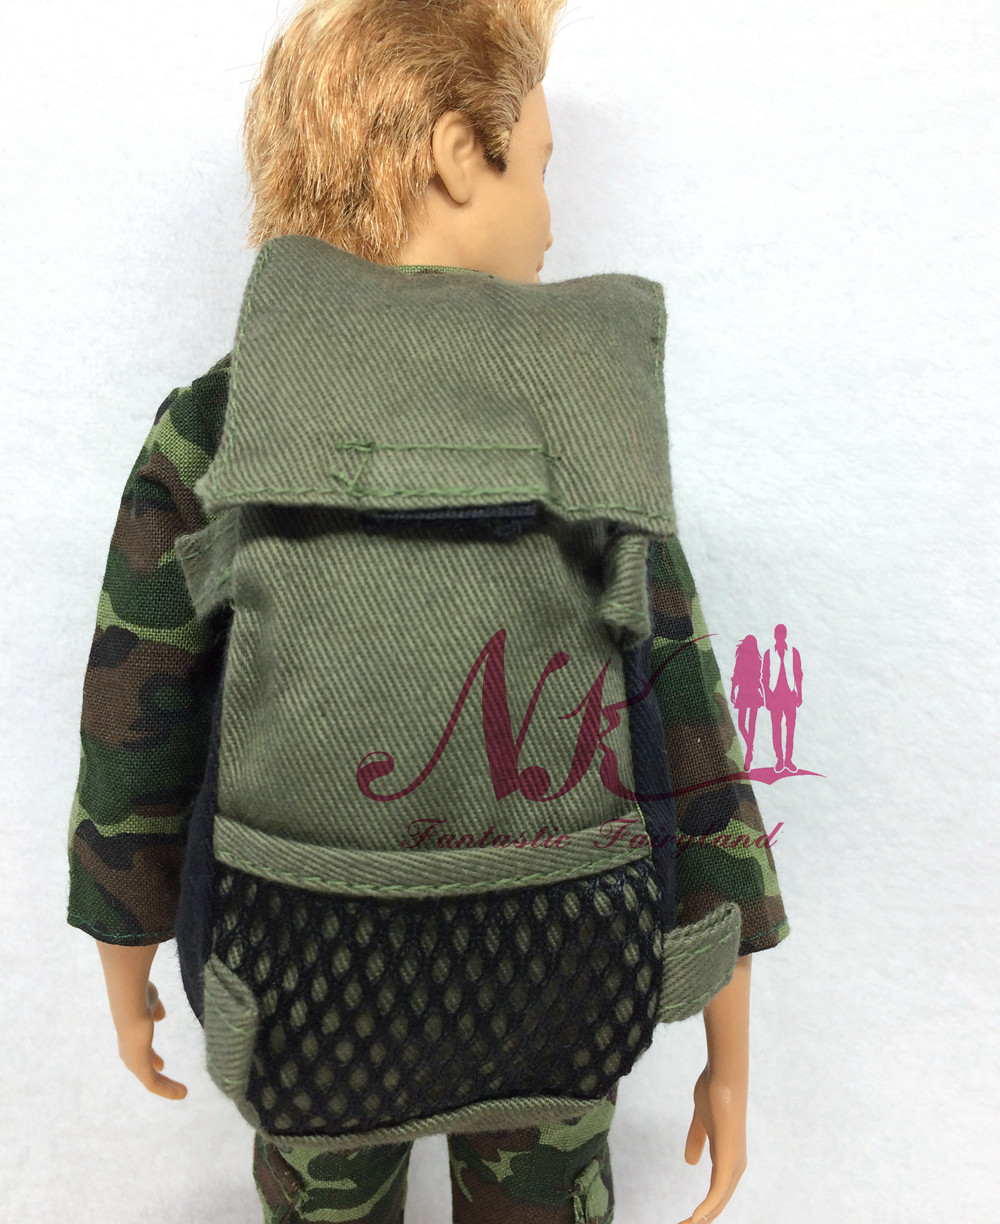 NK Original  Prince Doll Knapsack  Marines Combat Accessories Bag For Barbie Boy Male Ken Doll For Lanard 1/6 Soldier  Best Gift